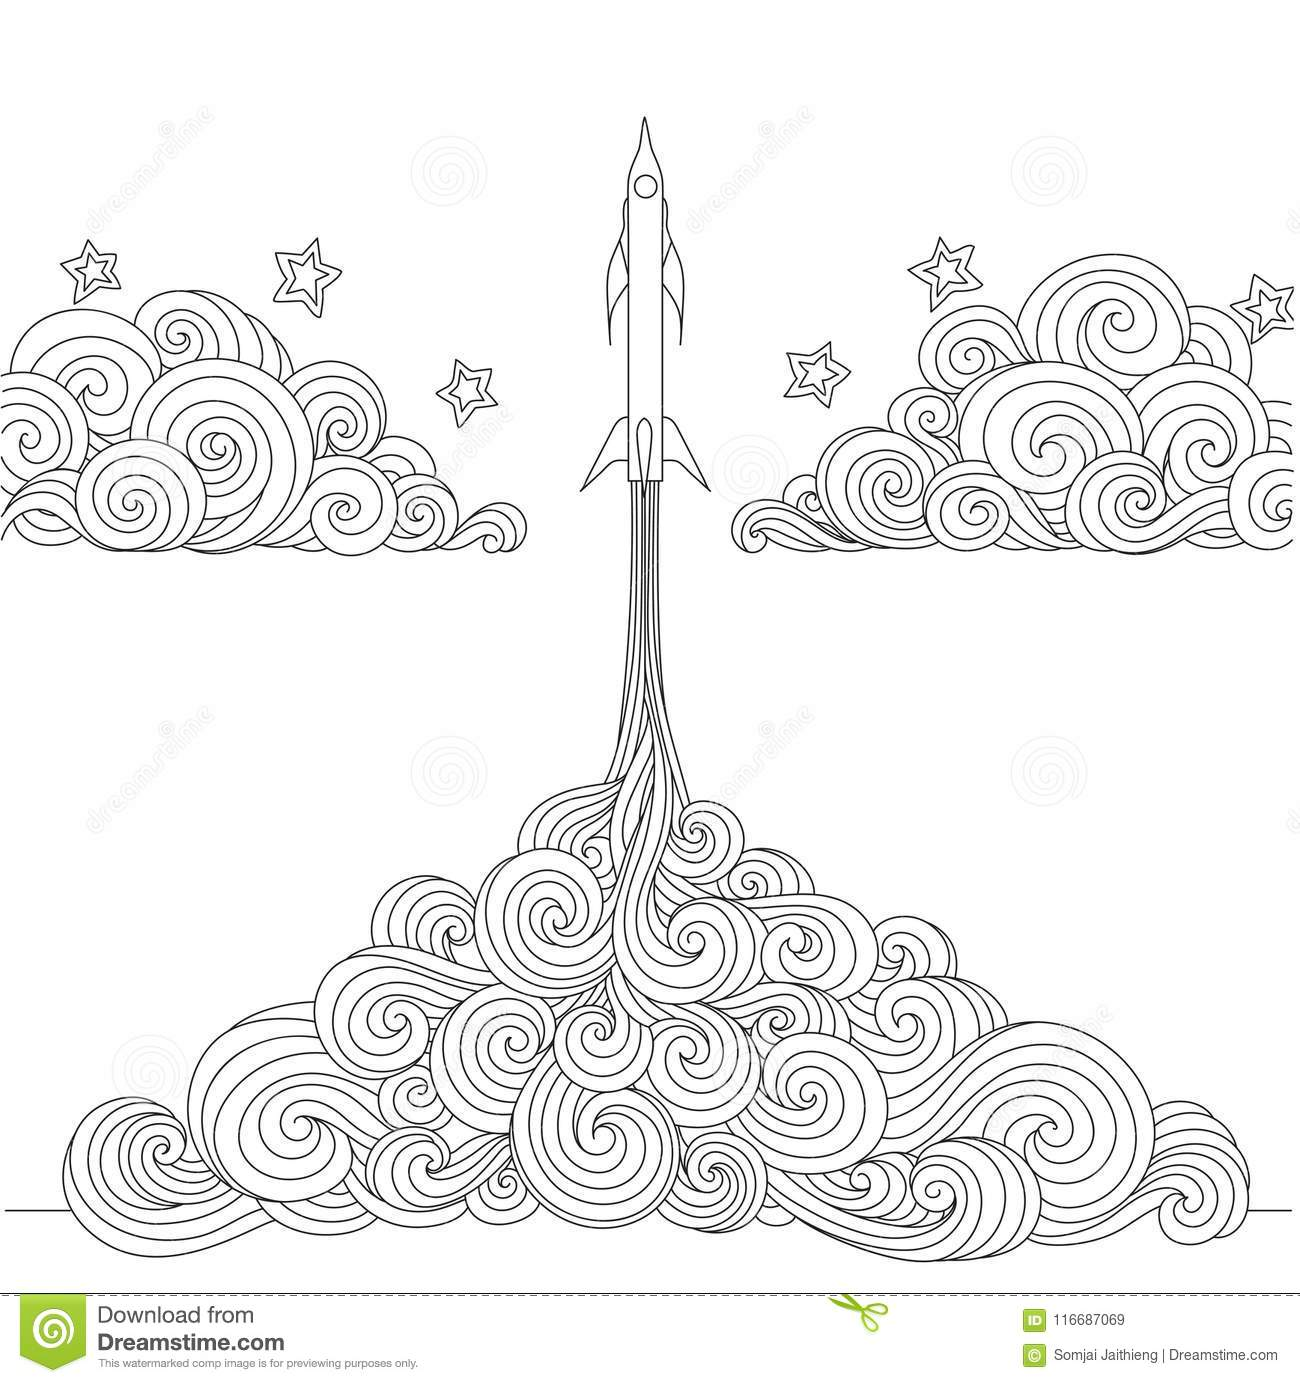 Line Art Design Of A Rocket Launching For Design Element